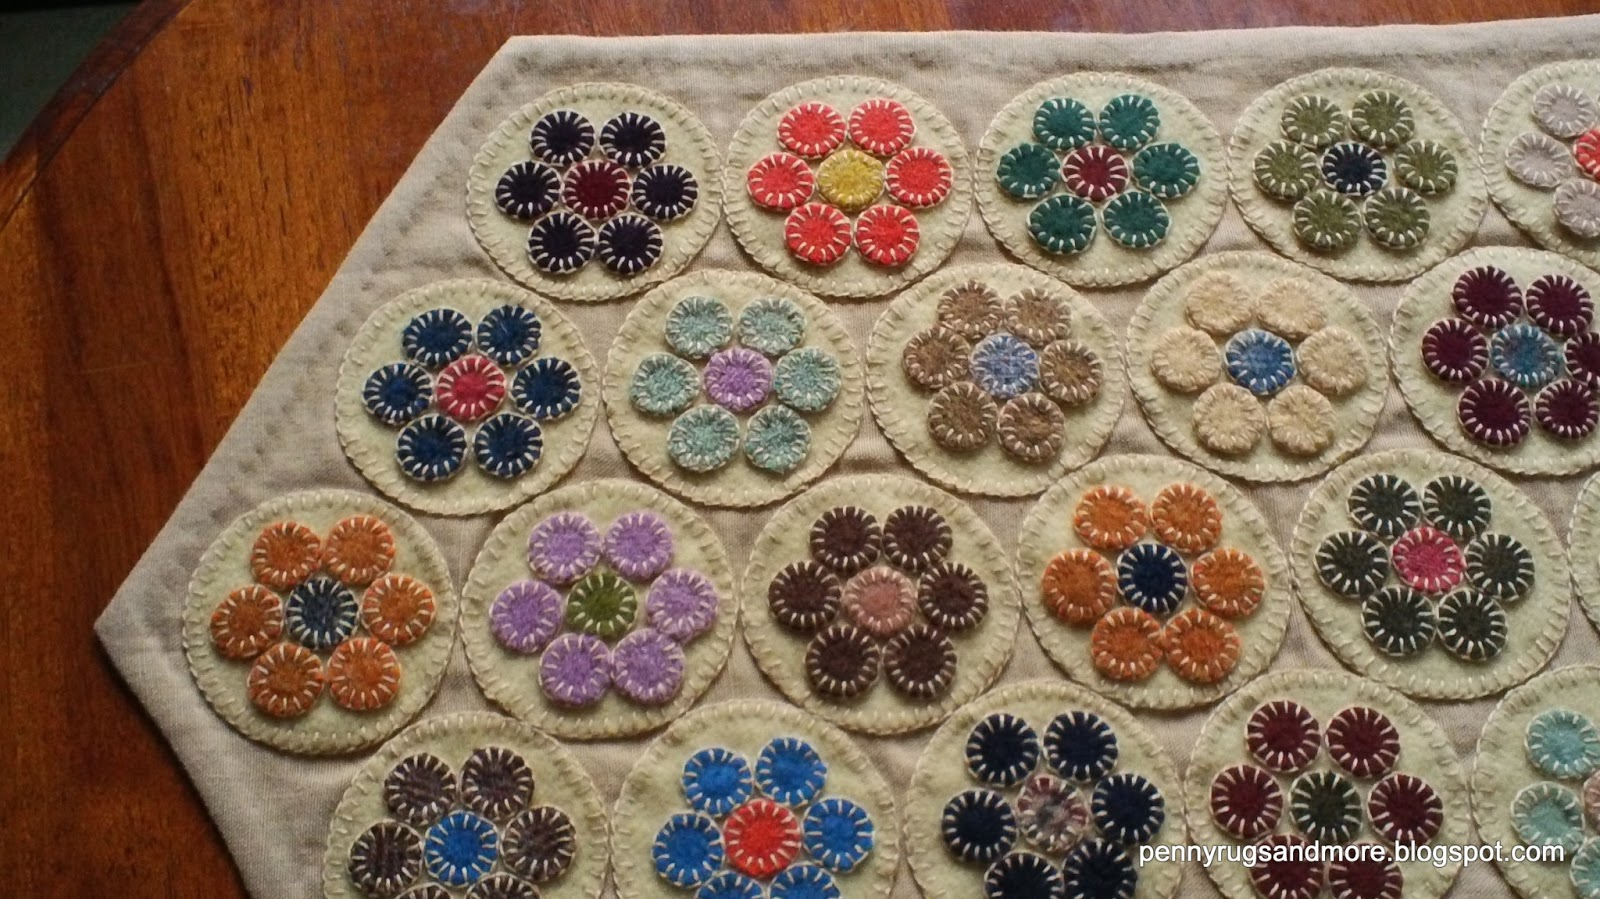 penny rugs and more penny rug tutorial part 5